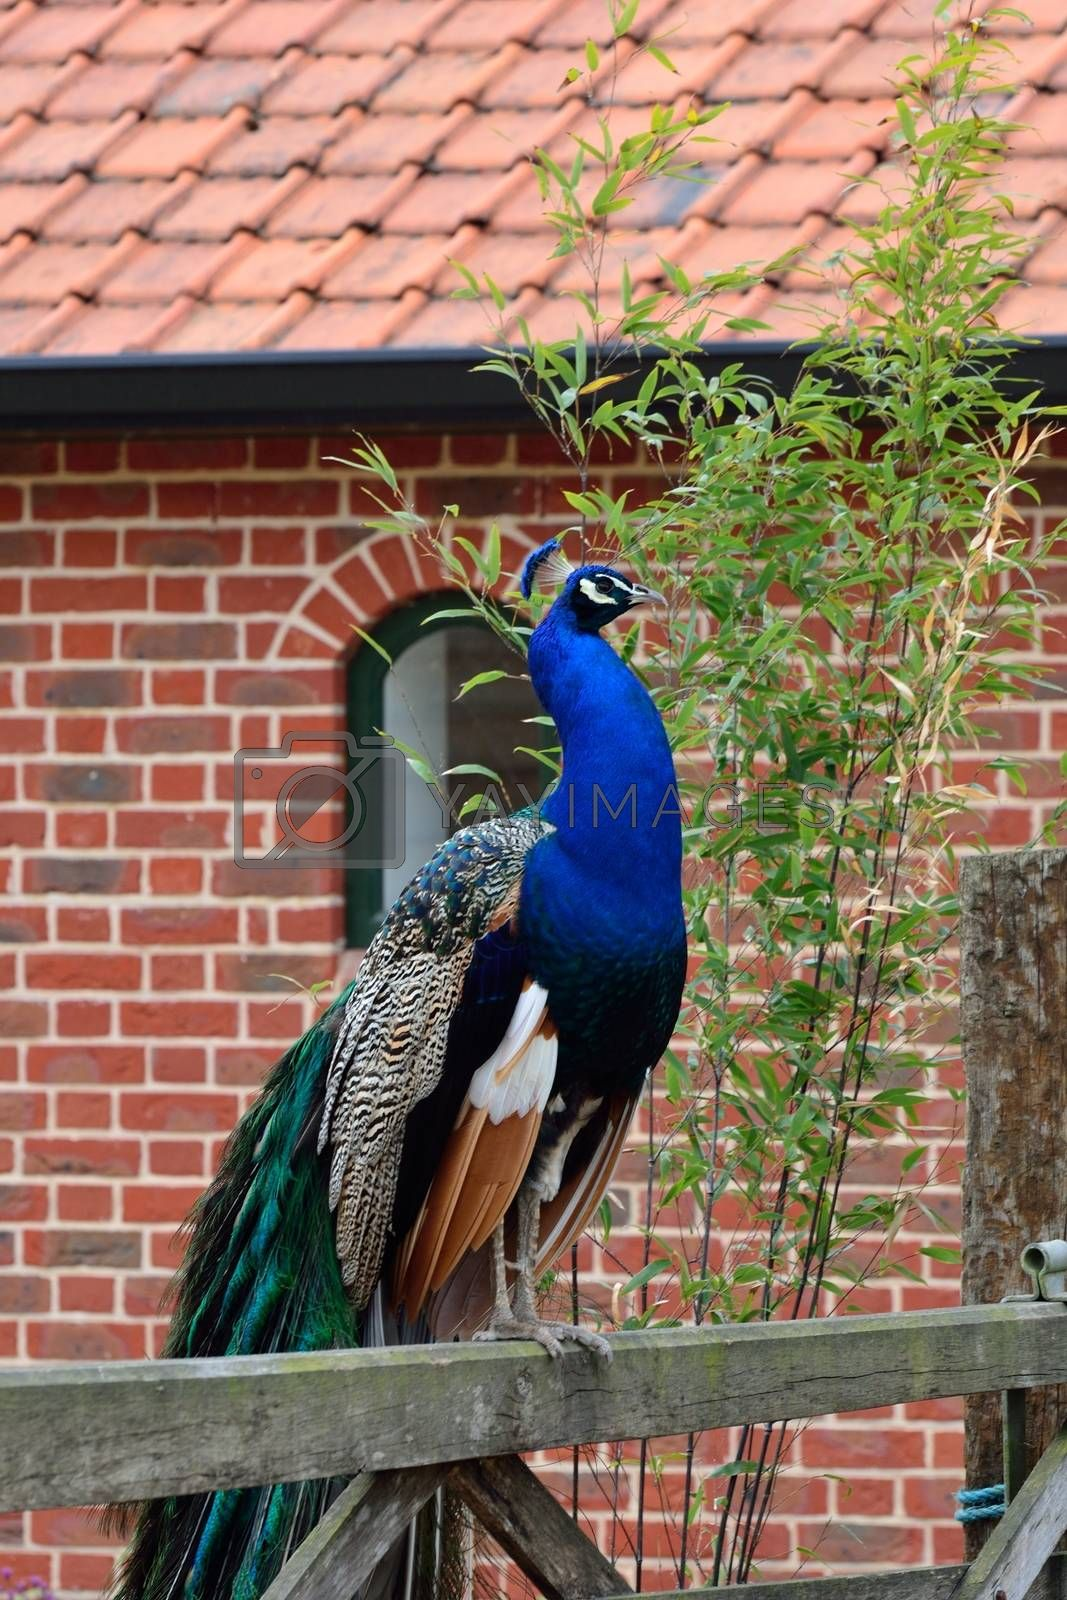 peacock on wood fence by pauws99